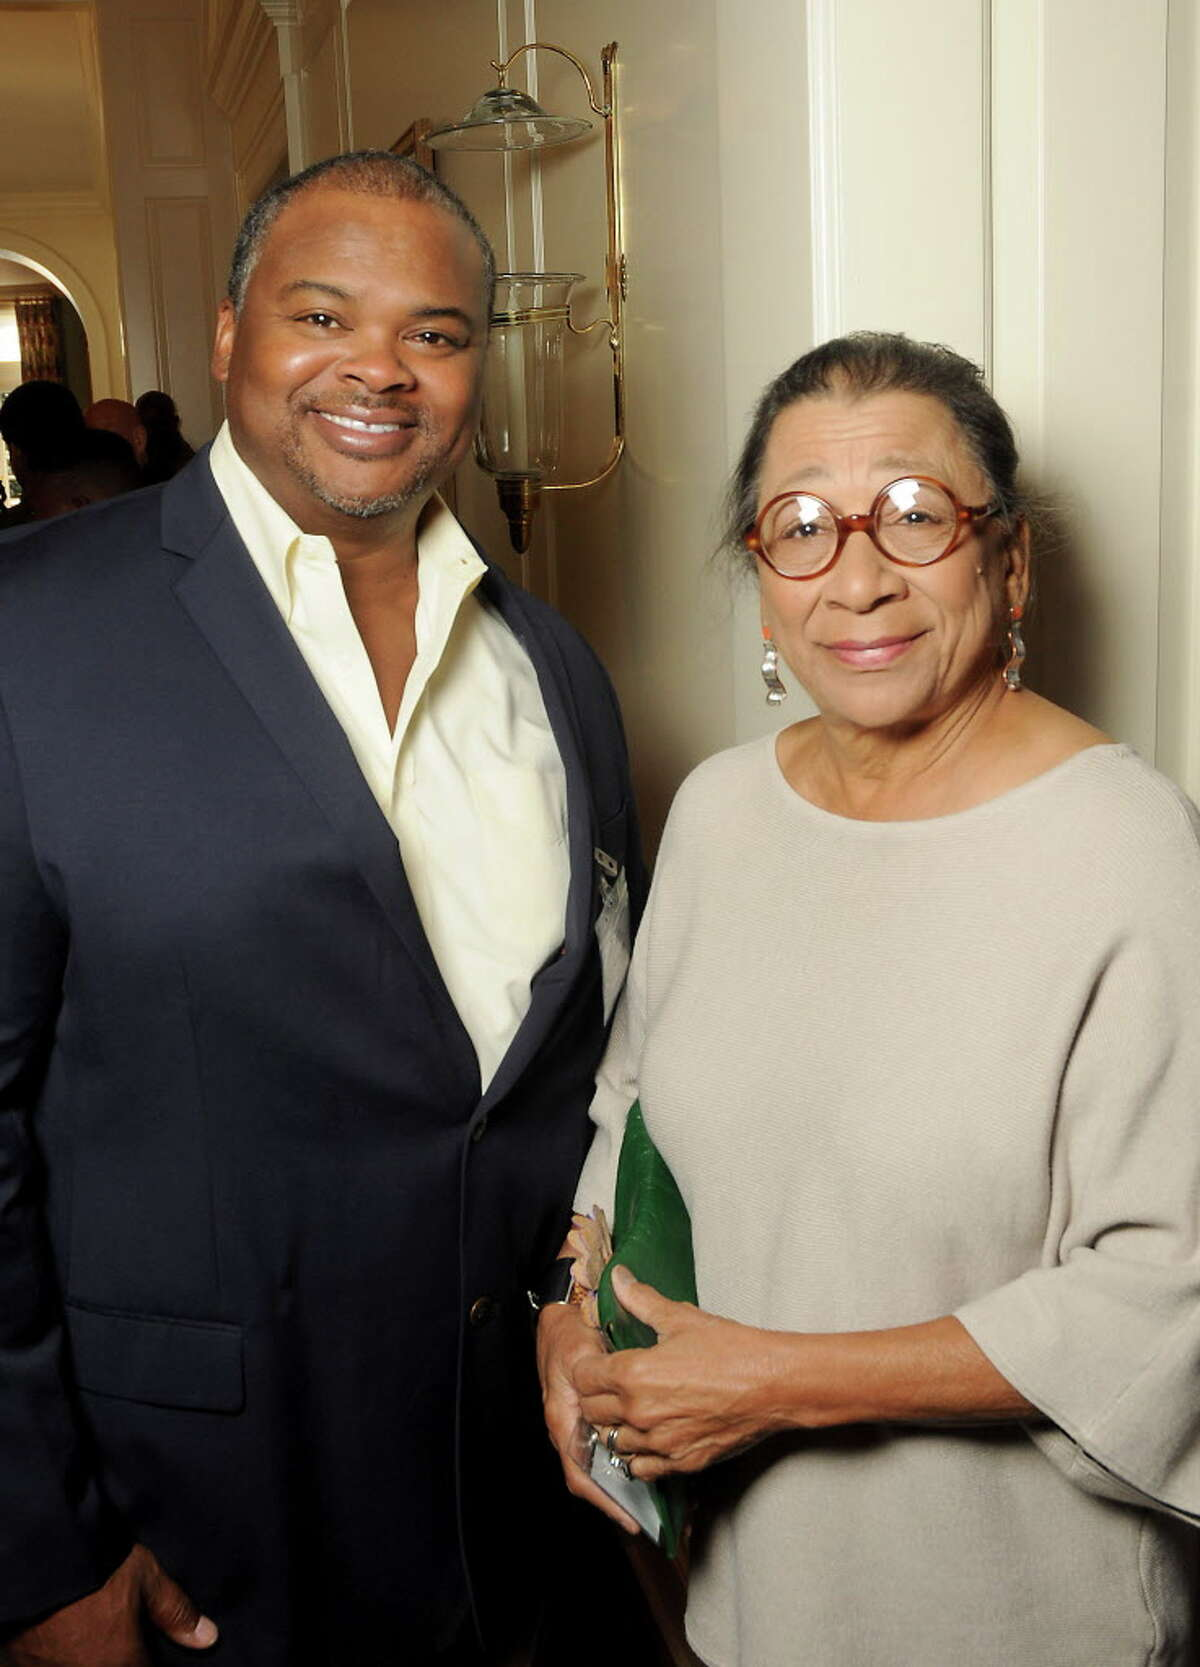 """Joe Carmouche and Erie Calloway at the Fifth Ward Enrichment Program's """"Changing Men, Changing Lives"""" luncheon at the Junior League of Houston honoring George Foreman Wednesday Oct. 25, 2017.(Dave Rossman Photo)"""